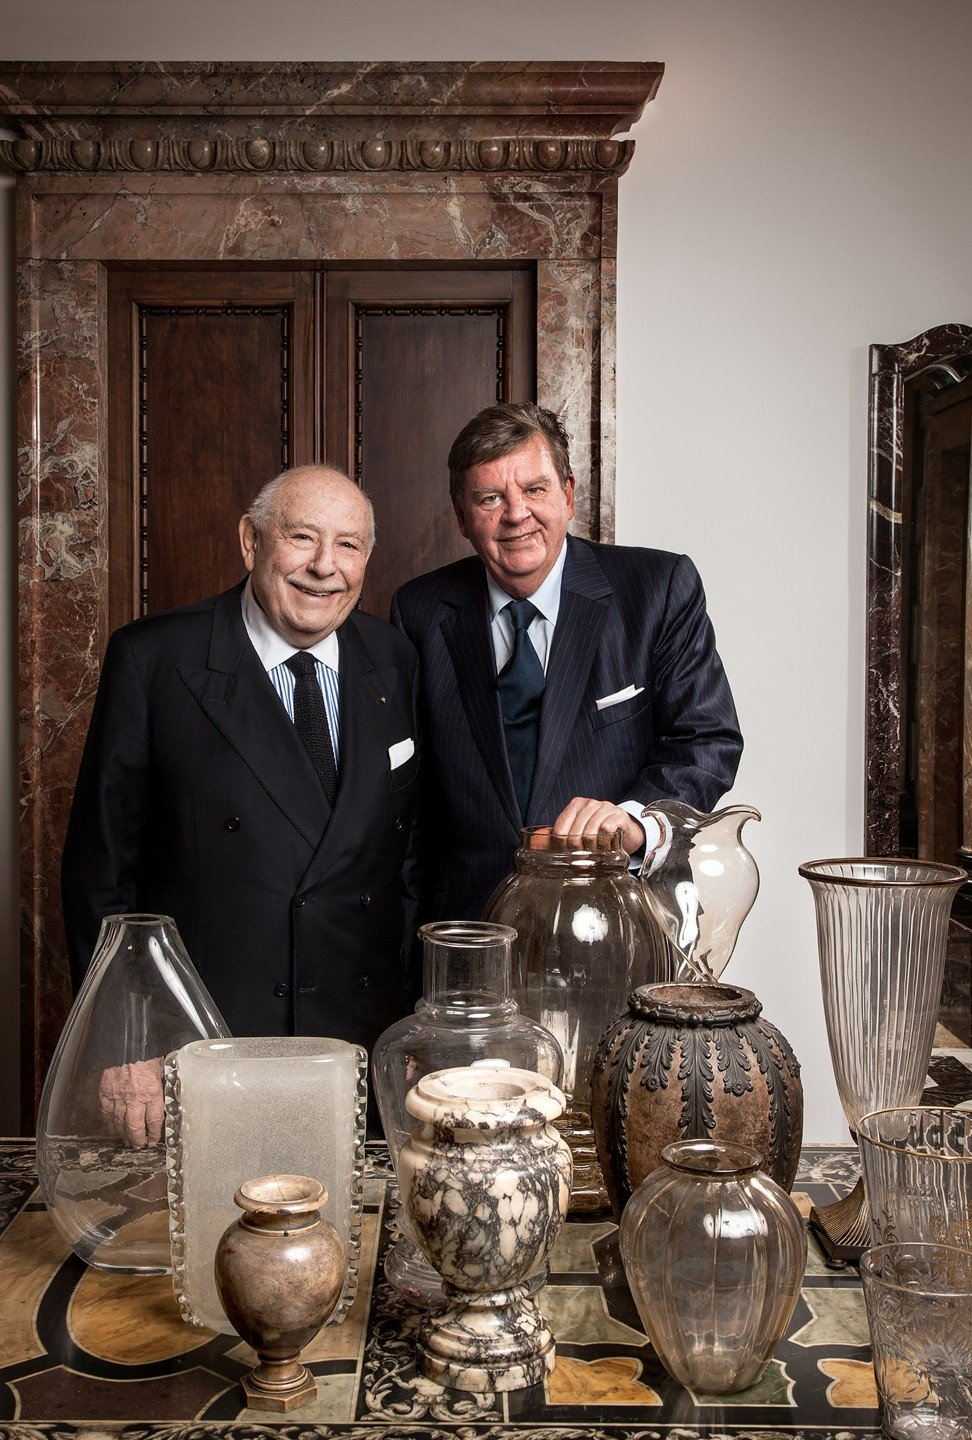 Richemont boss says Venice expo shows what man does better ...